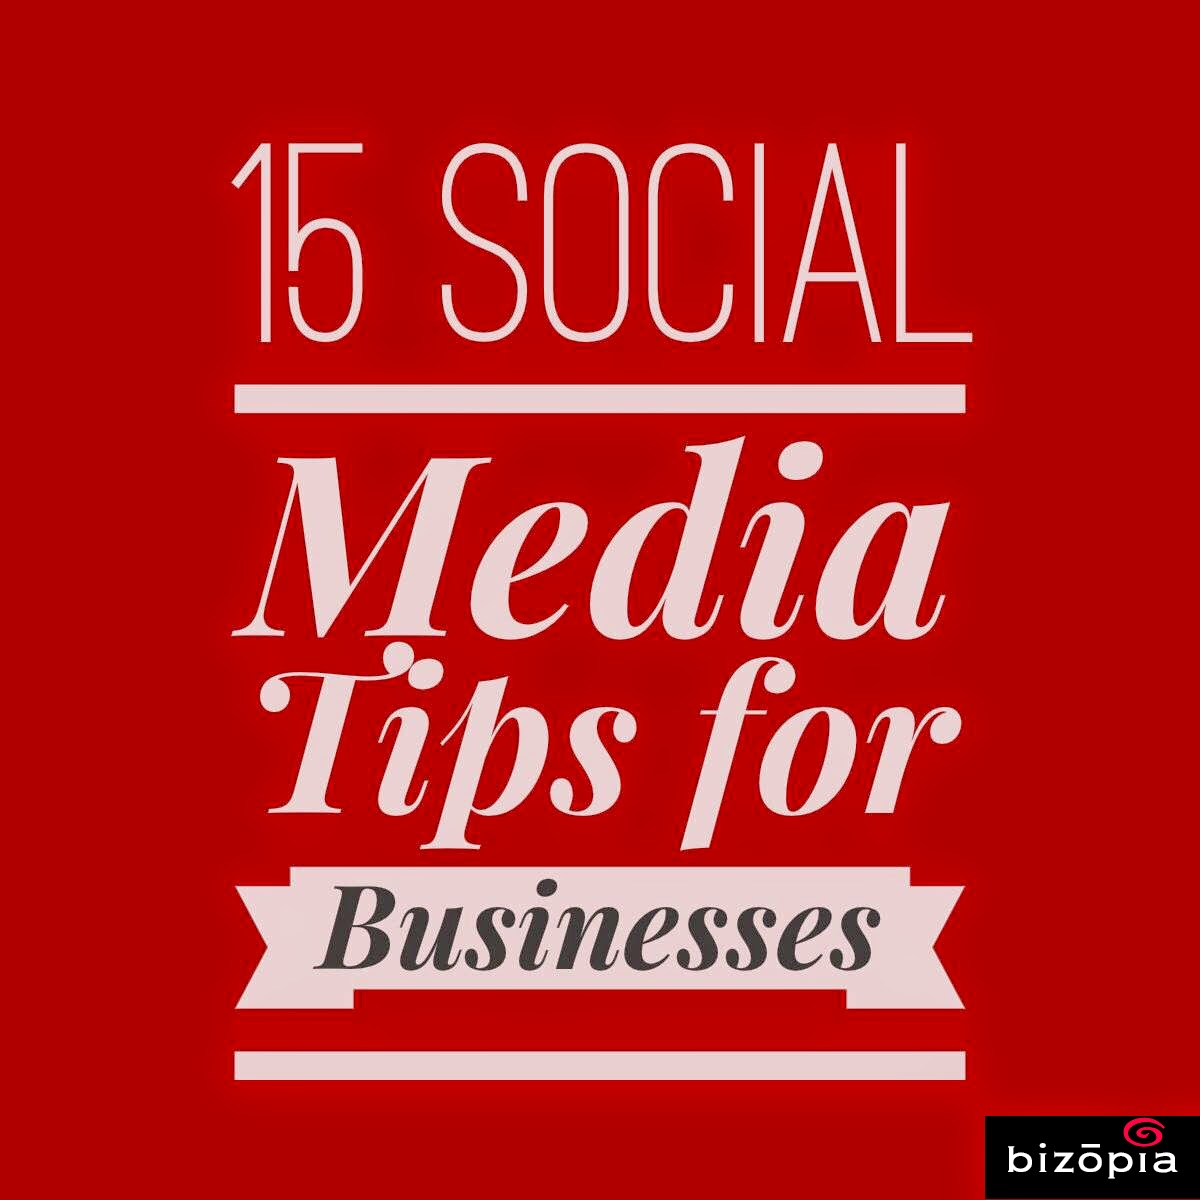 15 Social Media Tips for Business